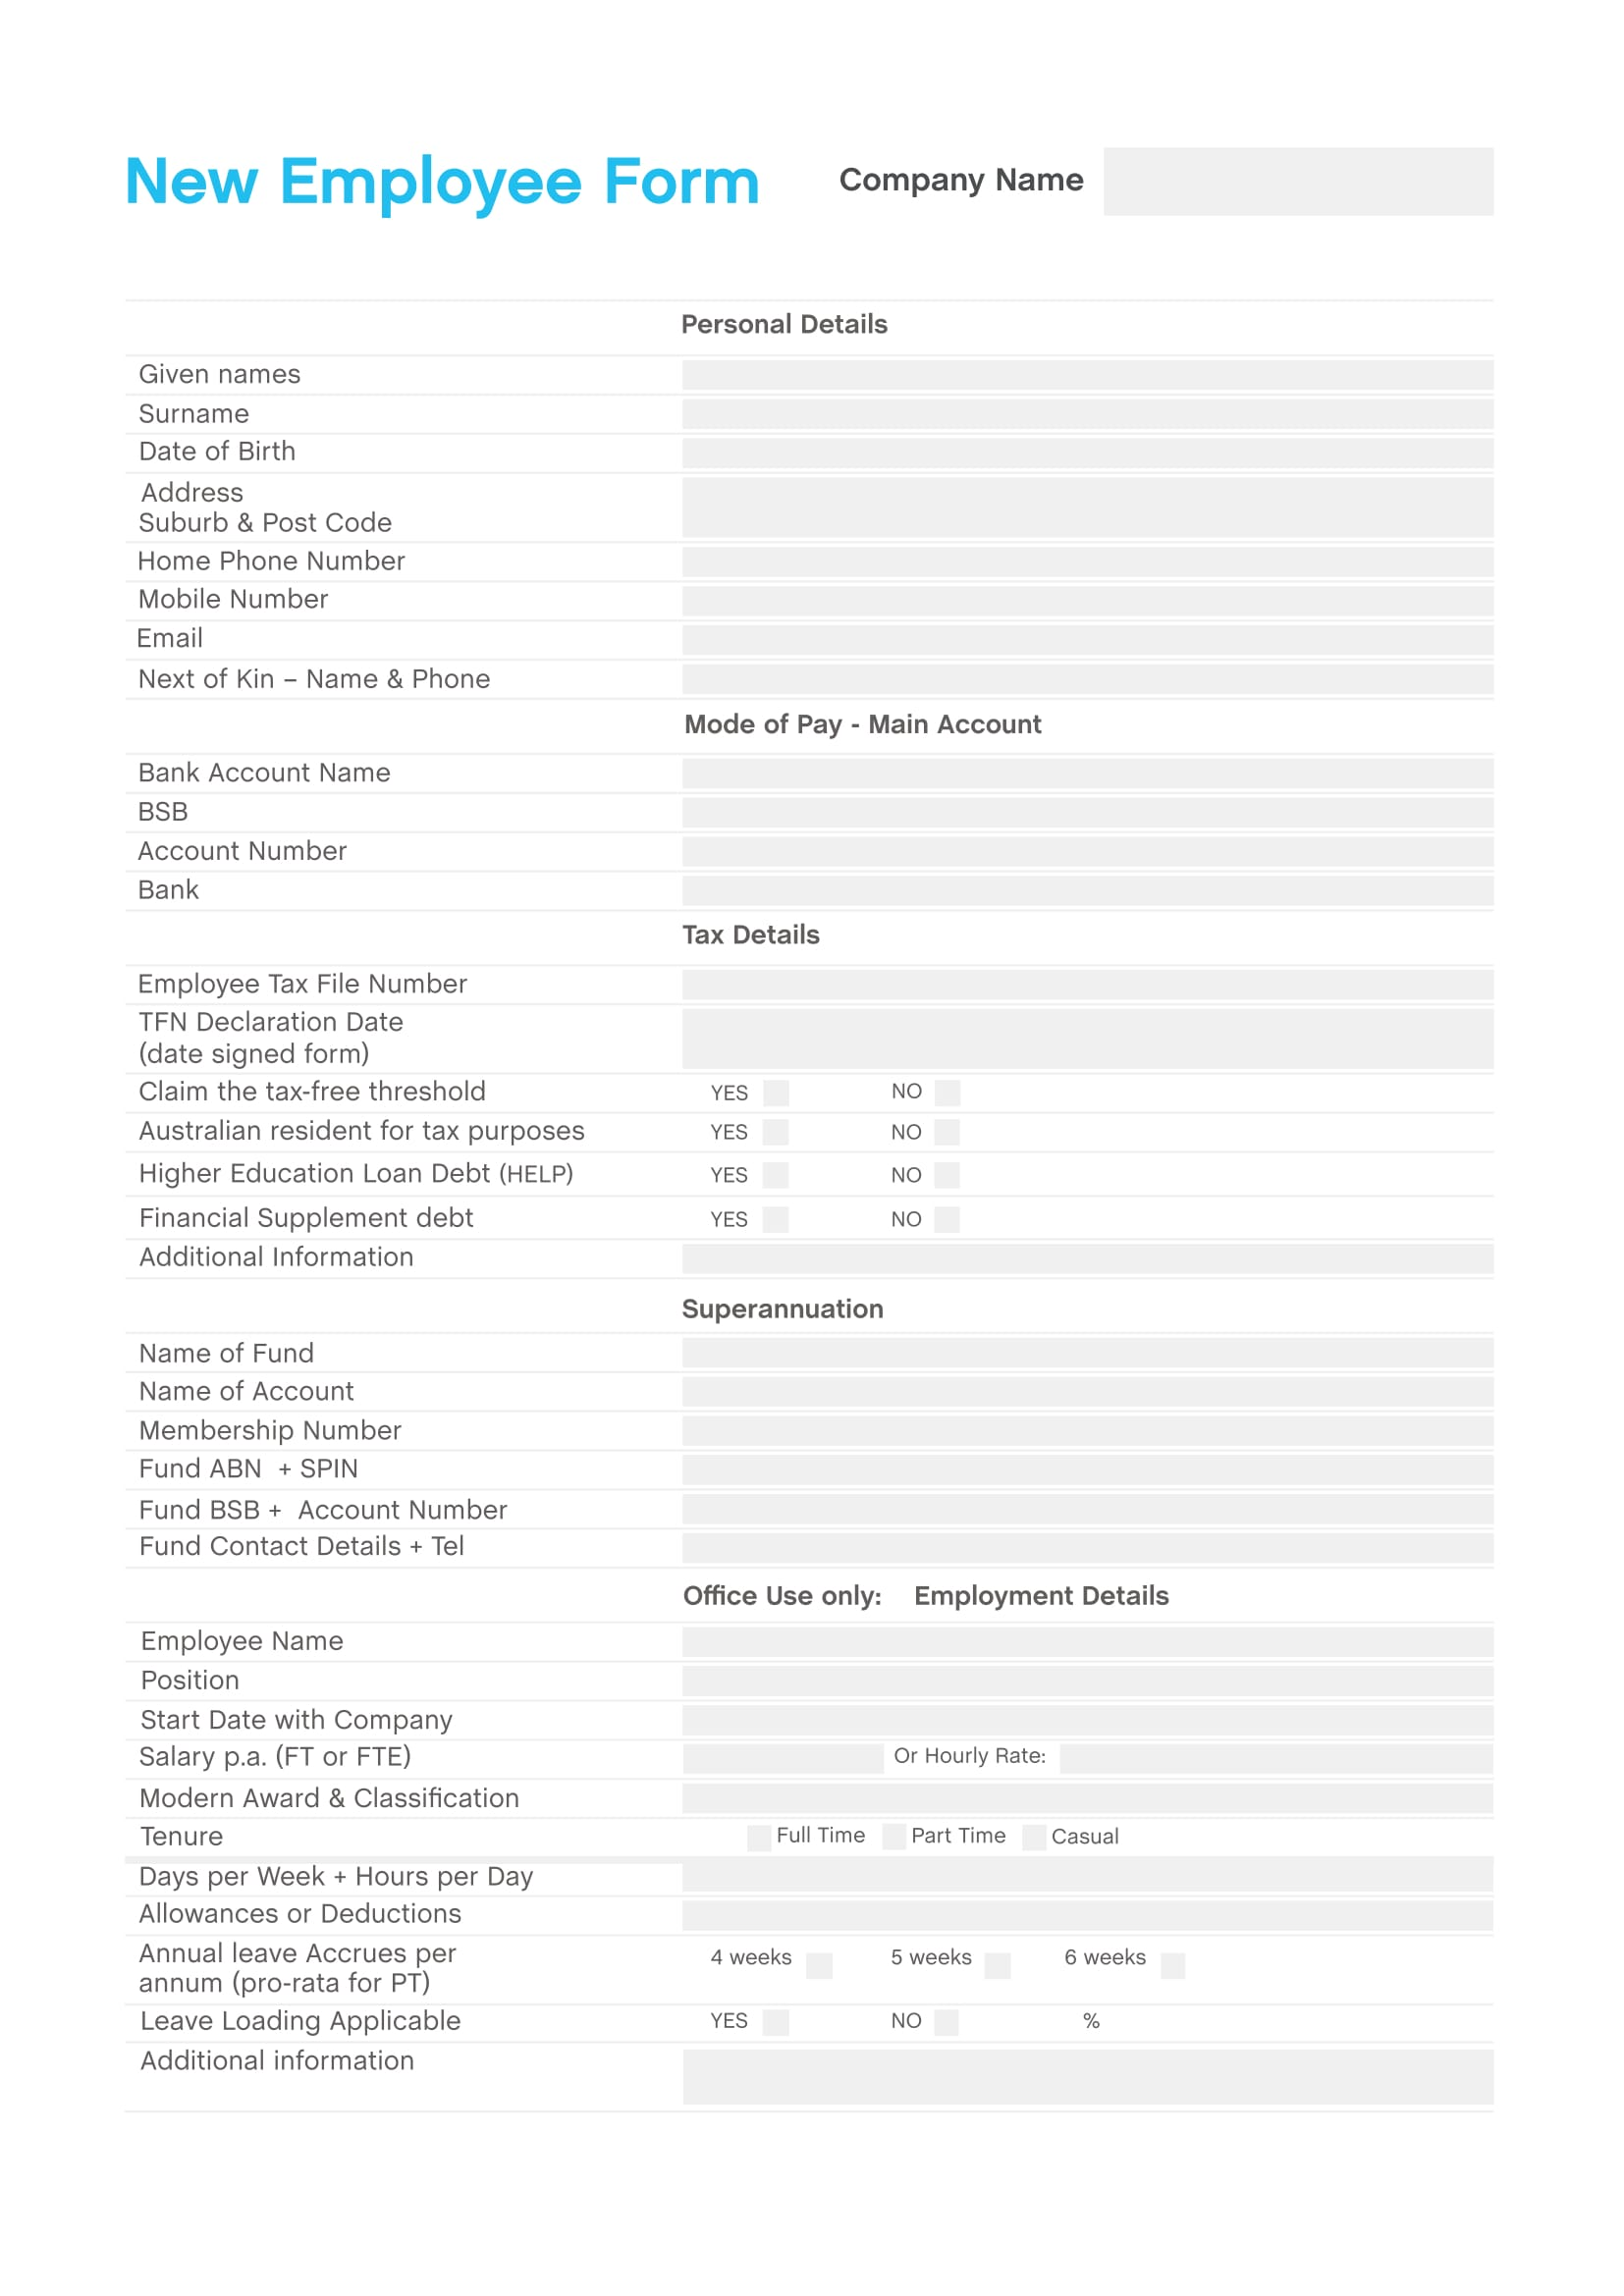 new employee form sample 1